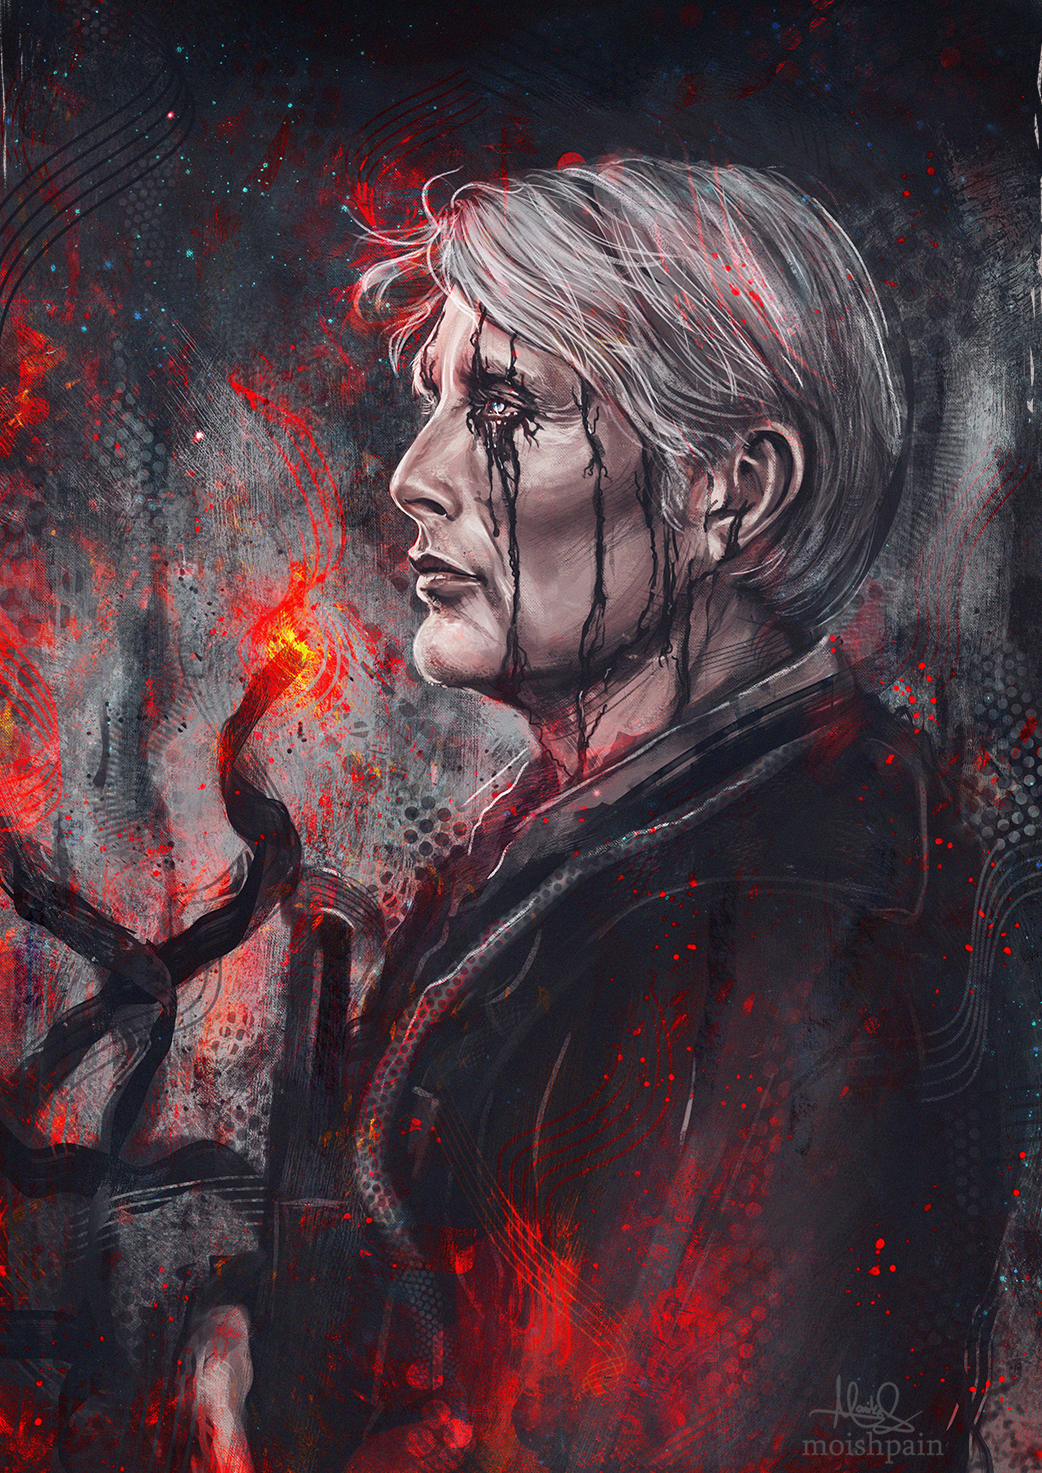 Mads in D.S. Pictures to draw, Life paint, Metal gear rising